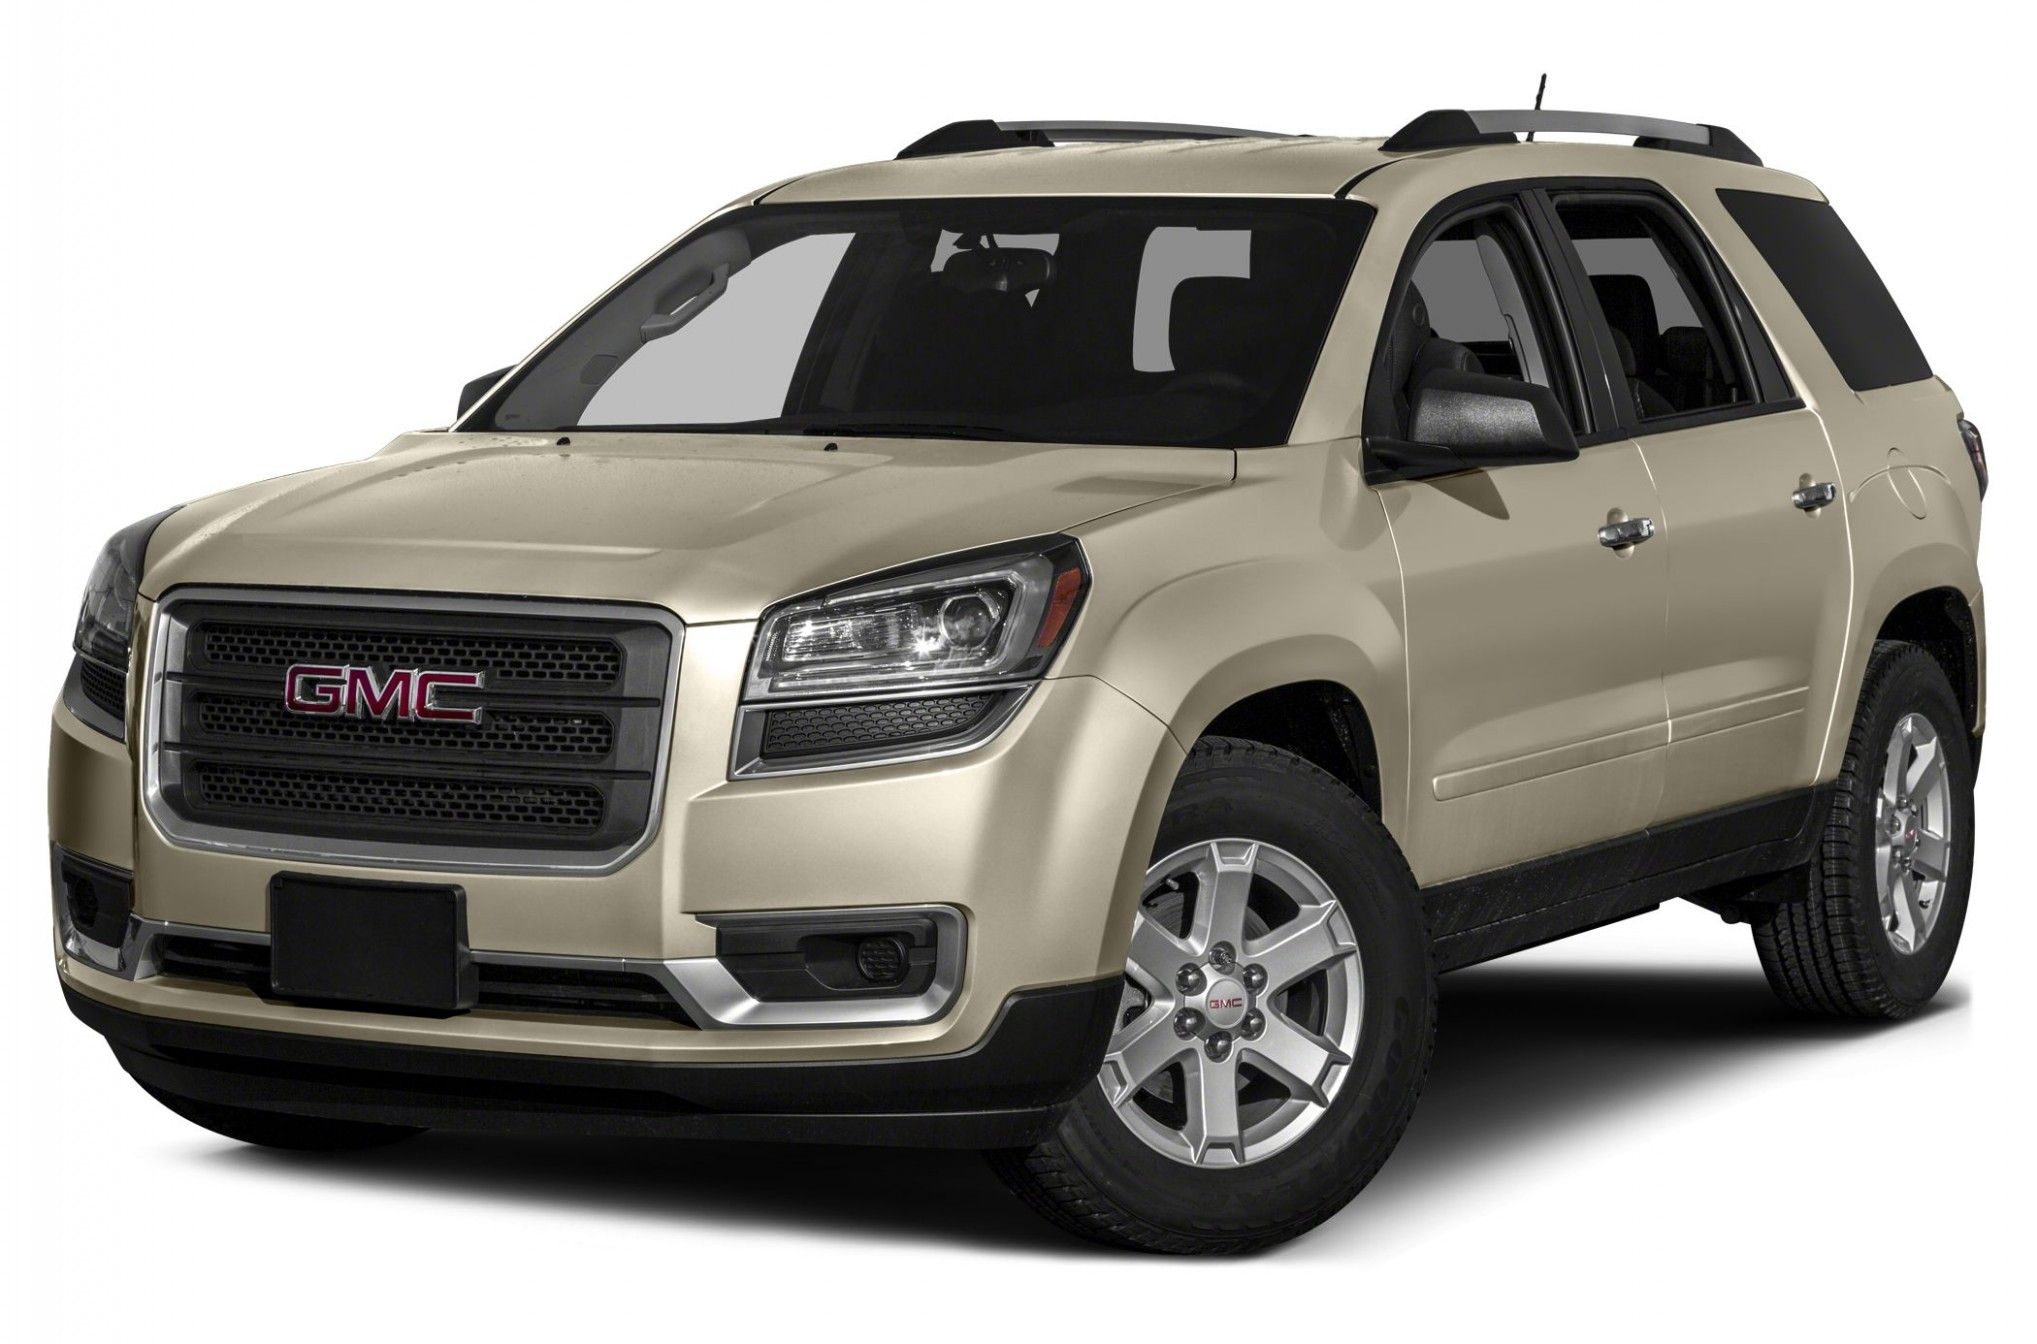 Best Of 2017 Gmc Acadia Wallpaper Gmc, New cars, Car